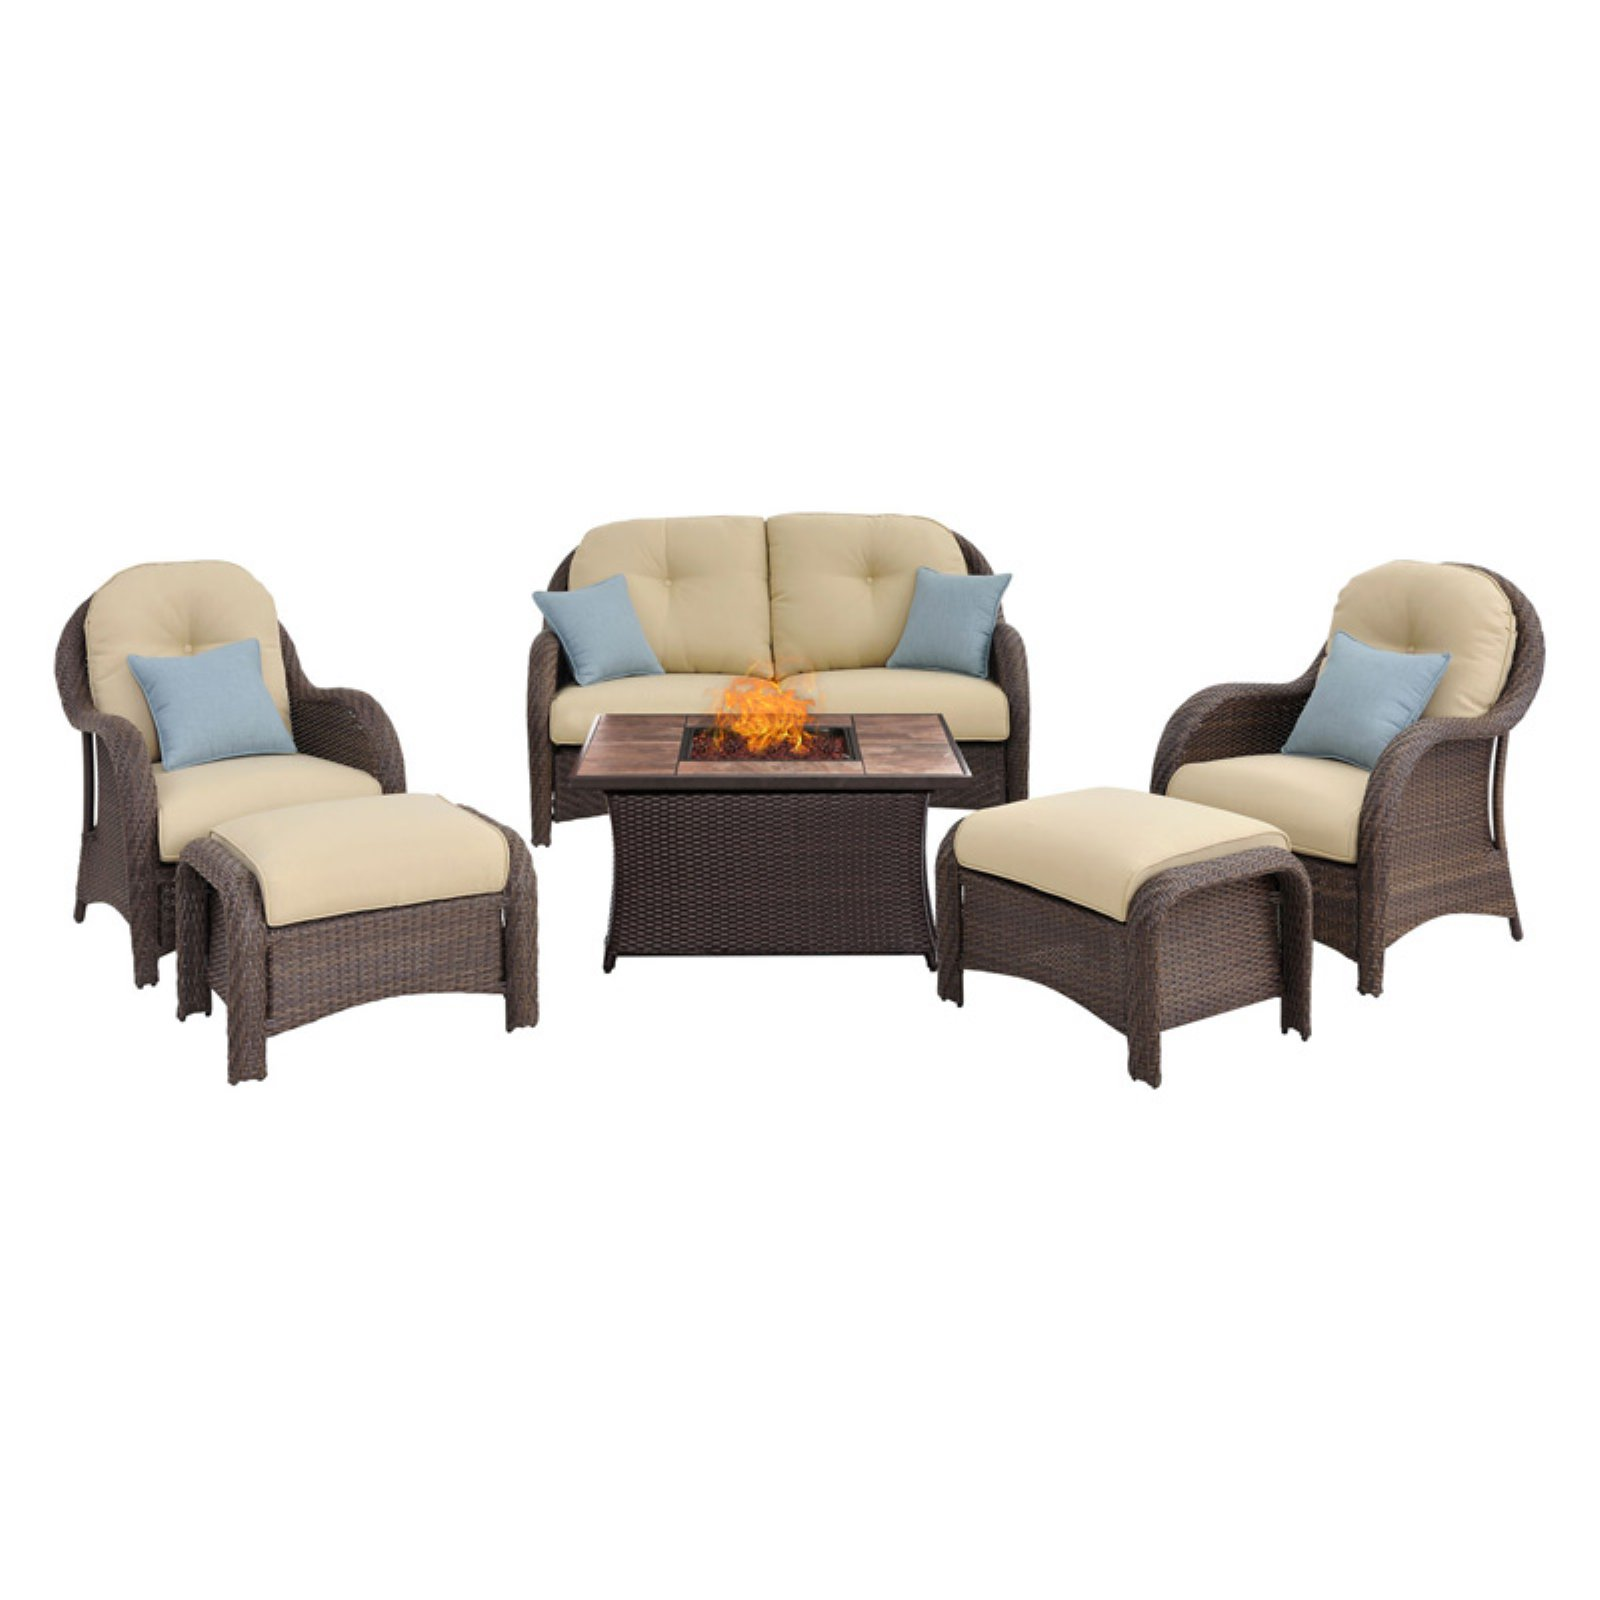 Outdoor Hanover Newport 6 Piece Woven Fire Pit Seating Set Gray